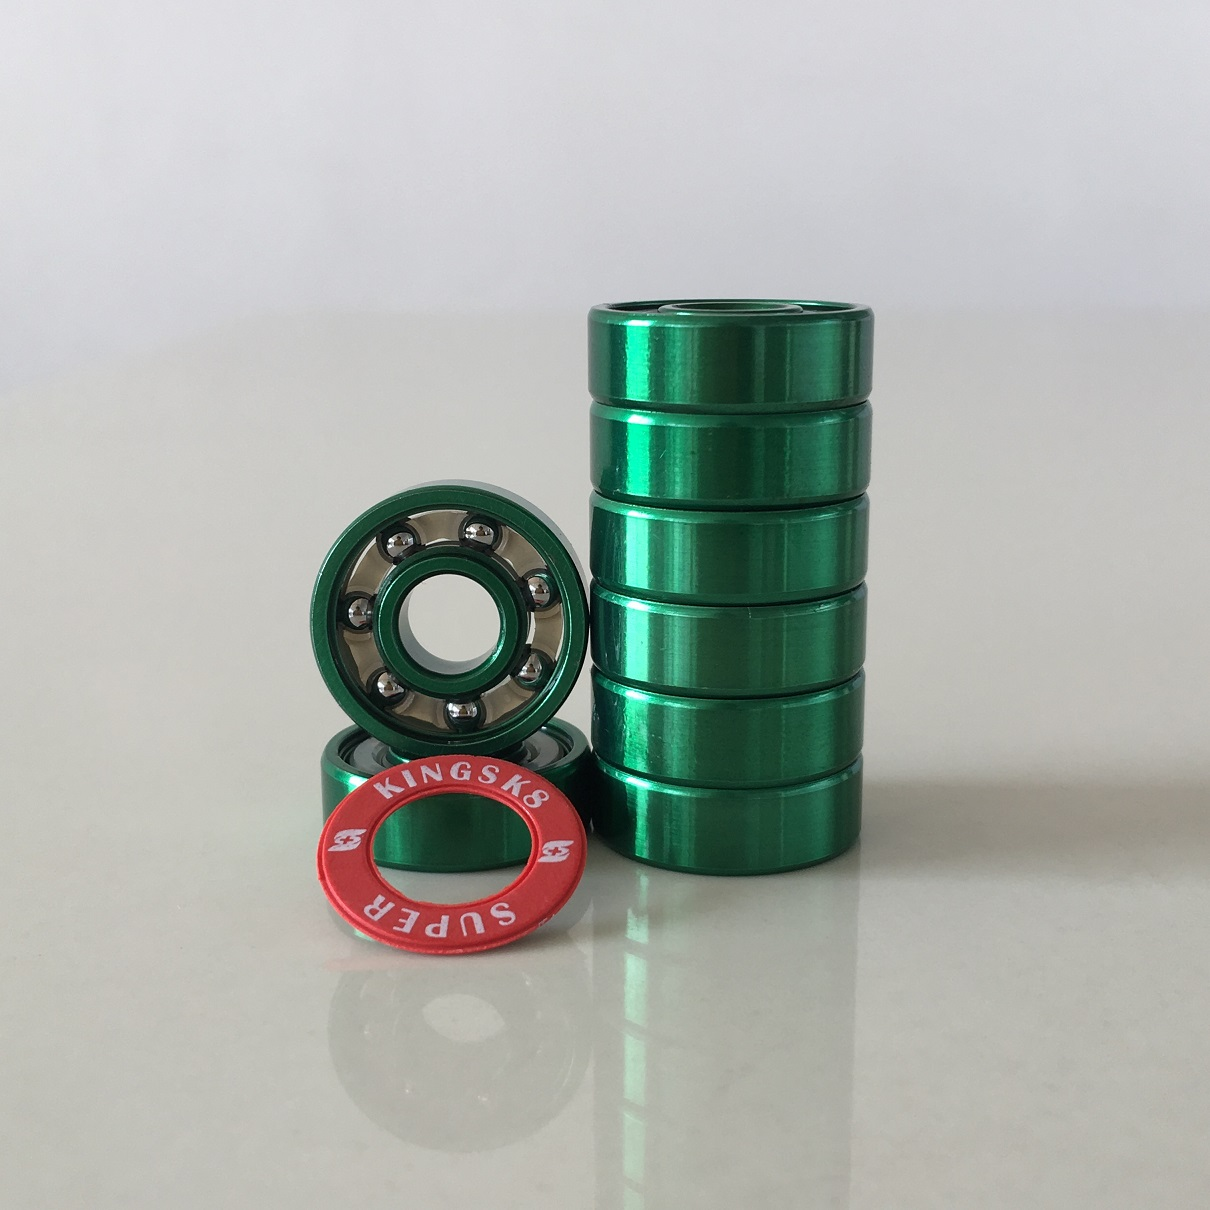 Kingsk8 Green Anodized Super Skateboard Bearings